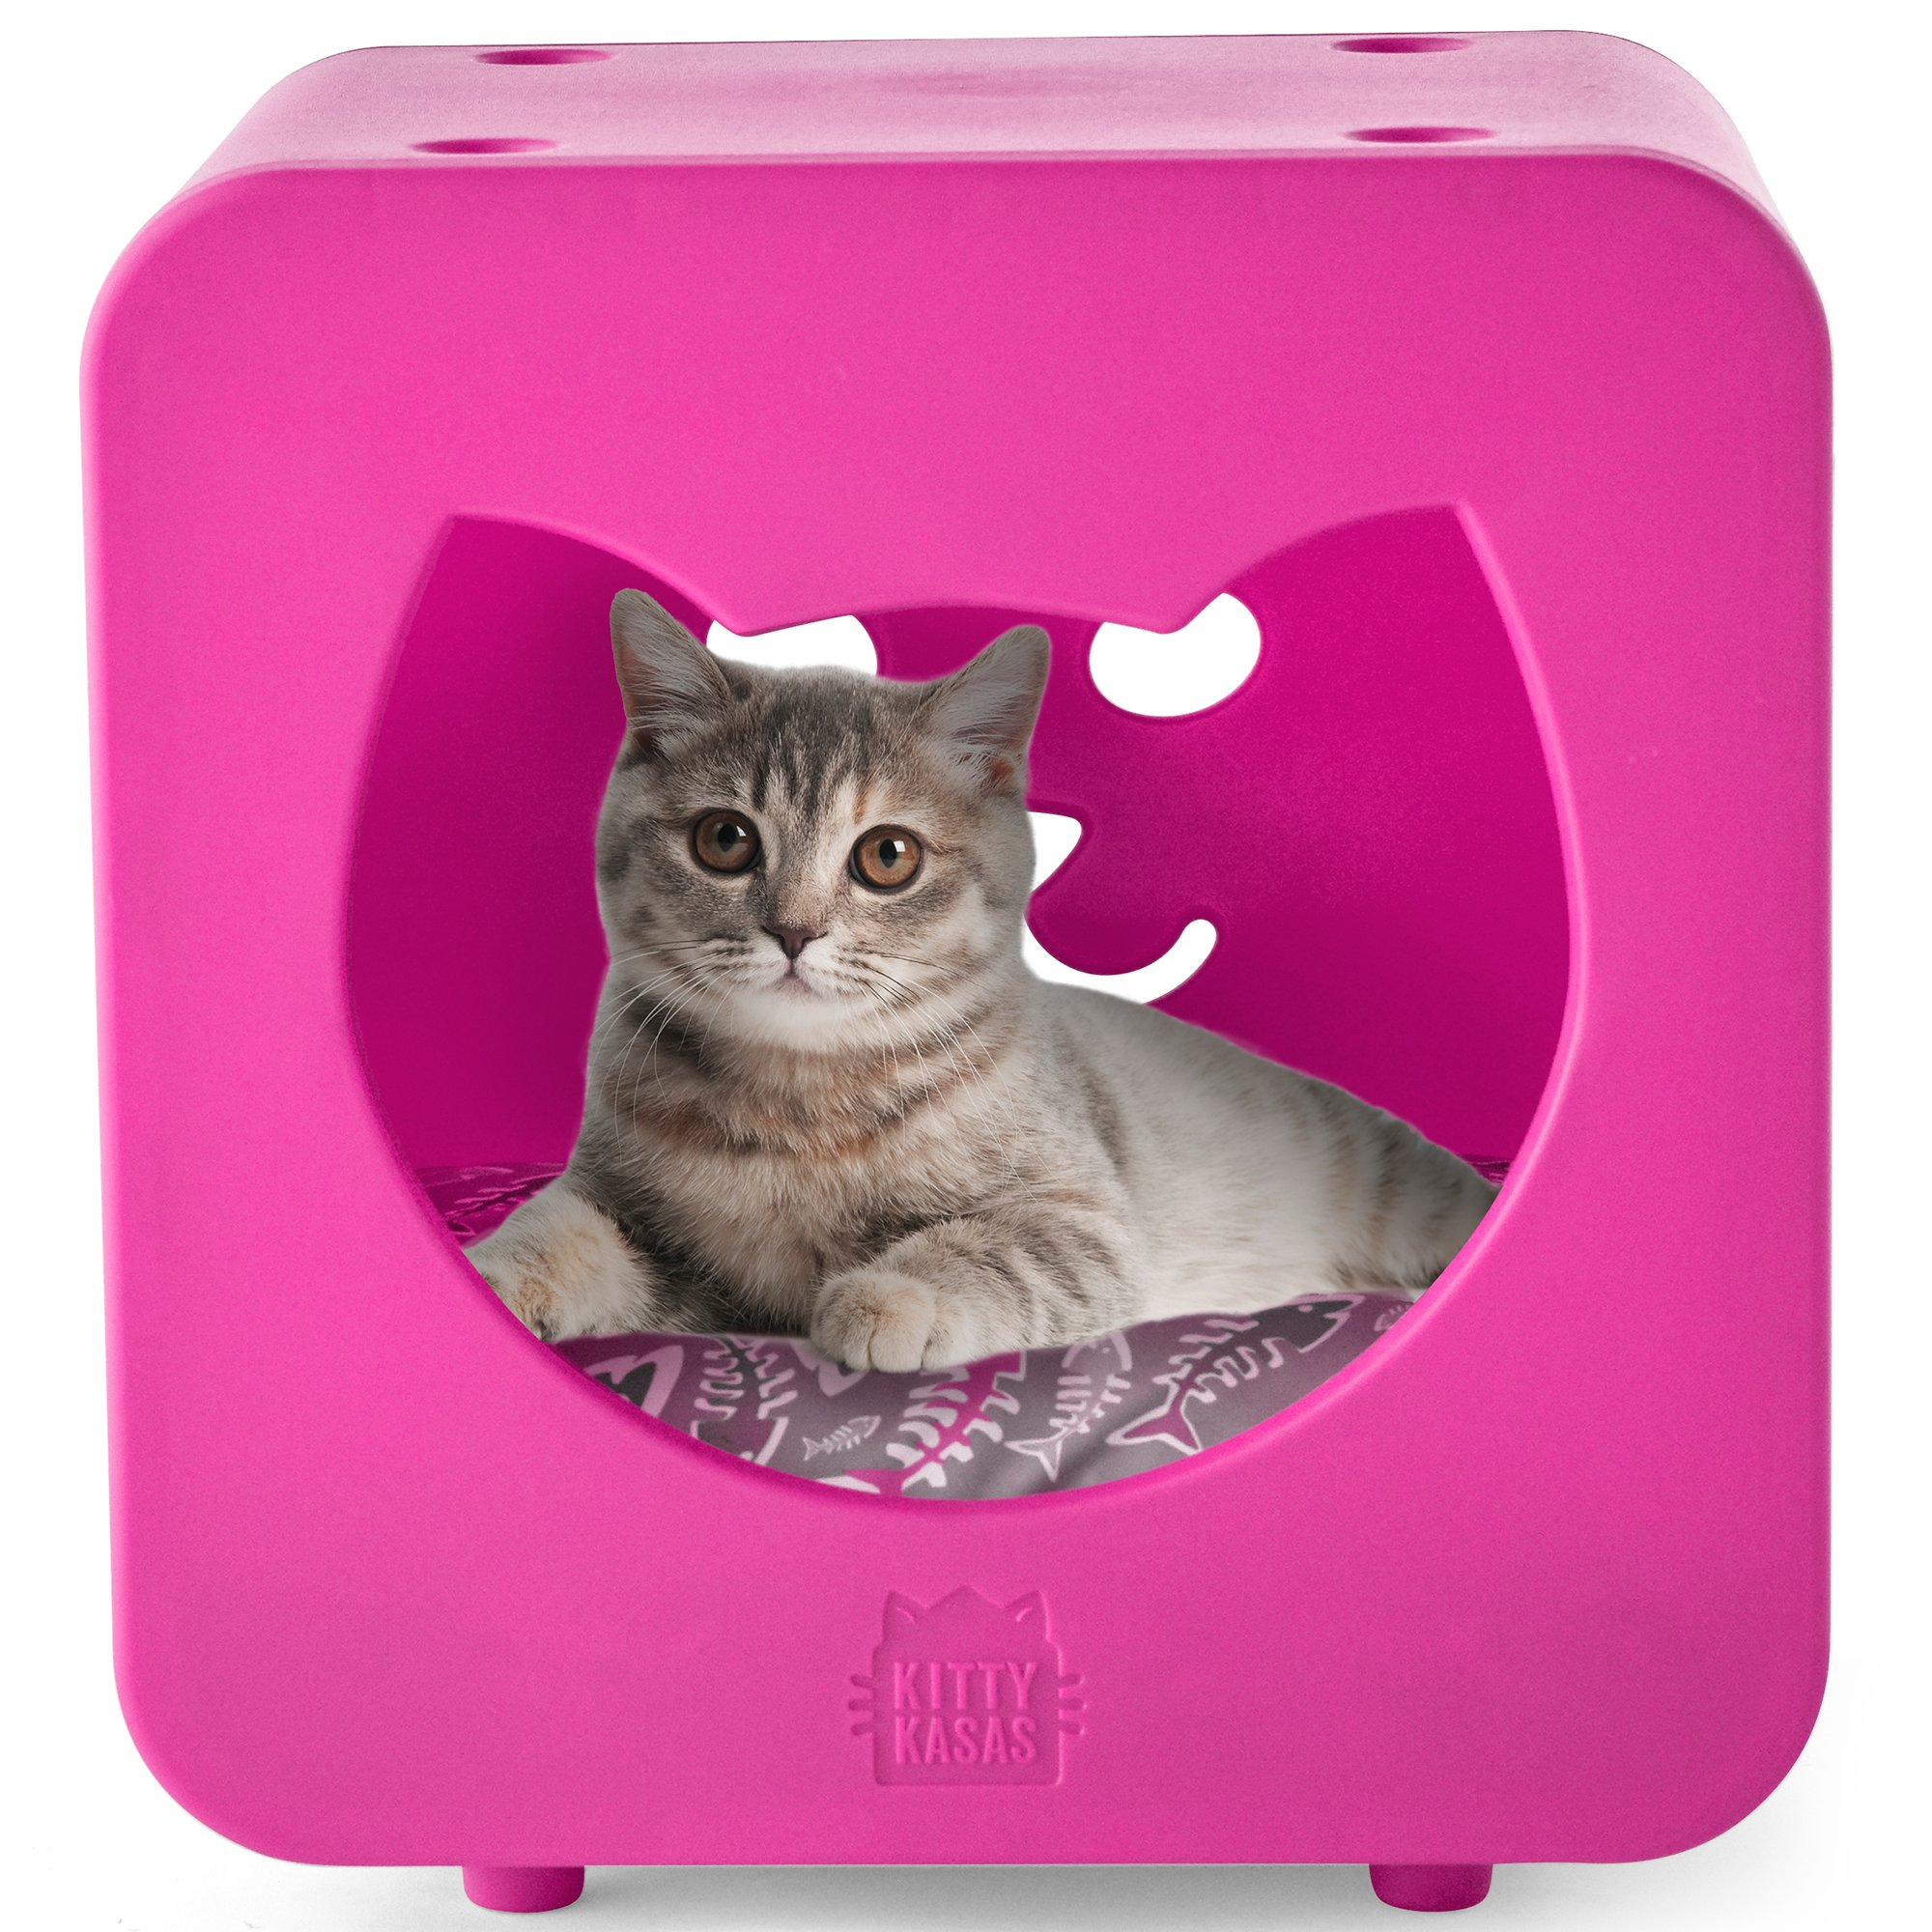 kitty kasas bedroom pink for cat petco. Black Bedroom Furniture Sets. Home Design Ideas